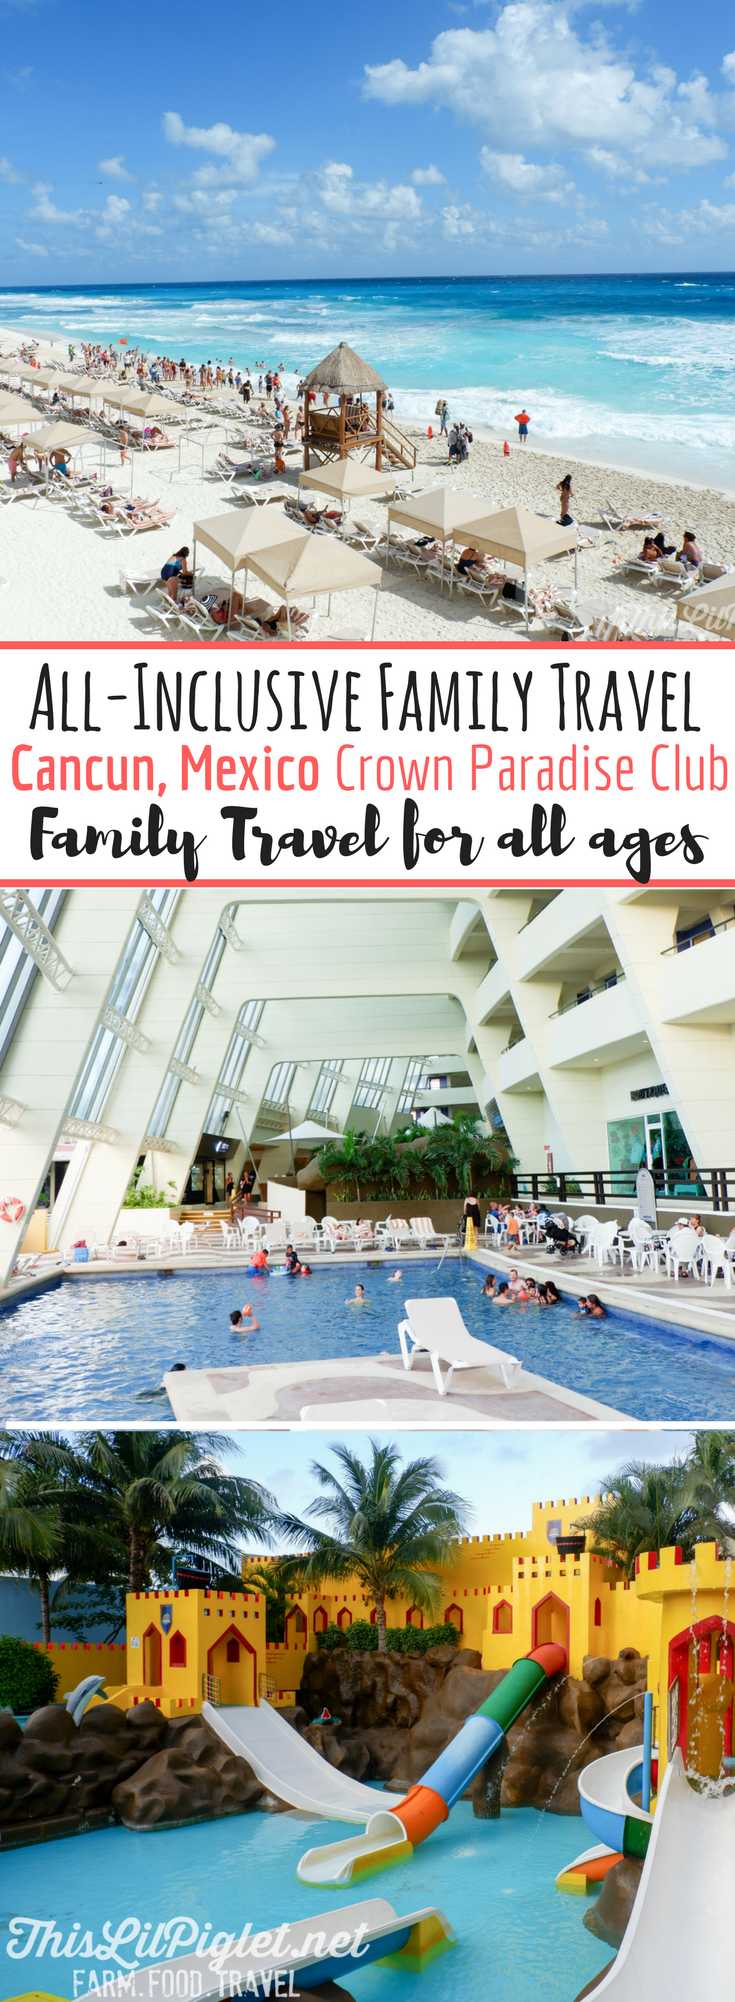 All-inclusive Family Vacations: Cancun, Mexico Crown Paradise Club Resort - Family Travel for All Ages // thislilpiglet.net